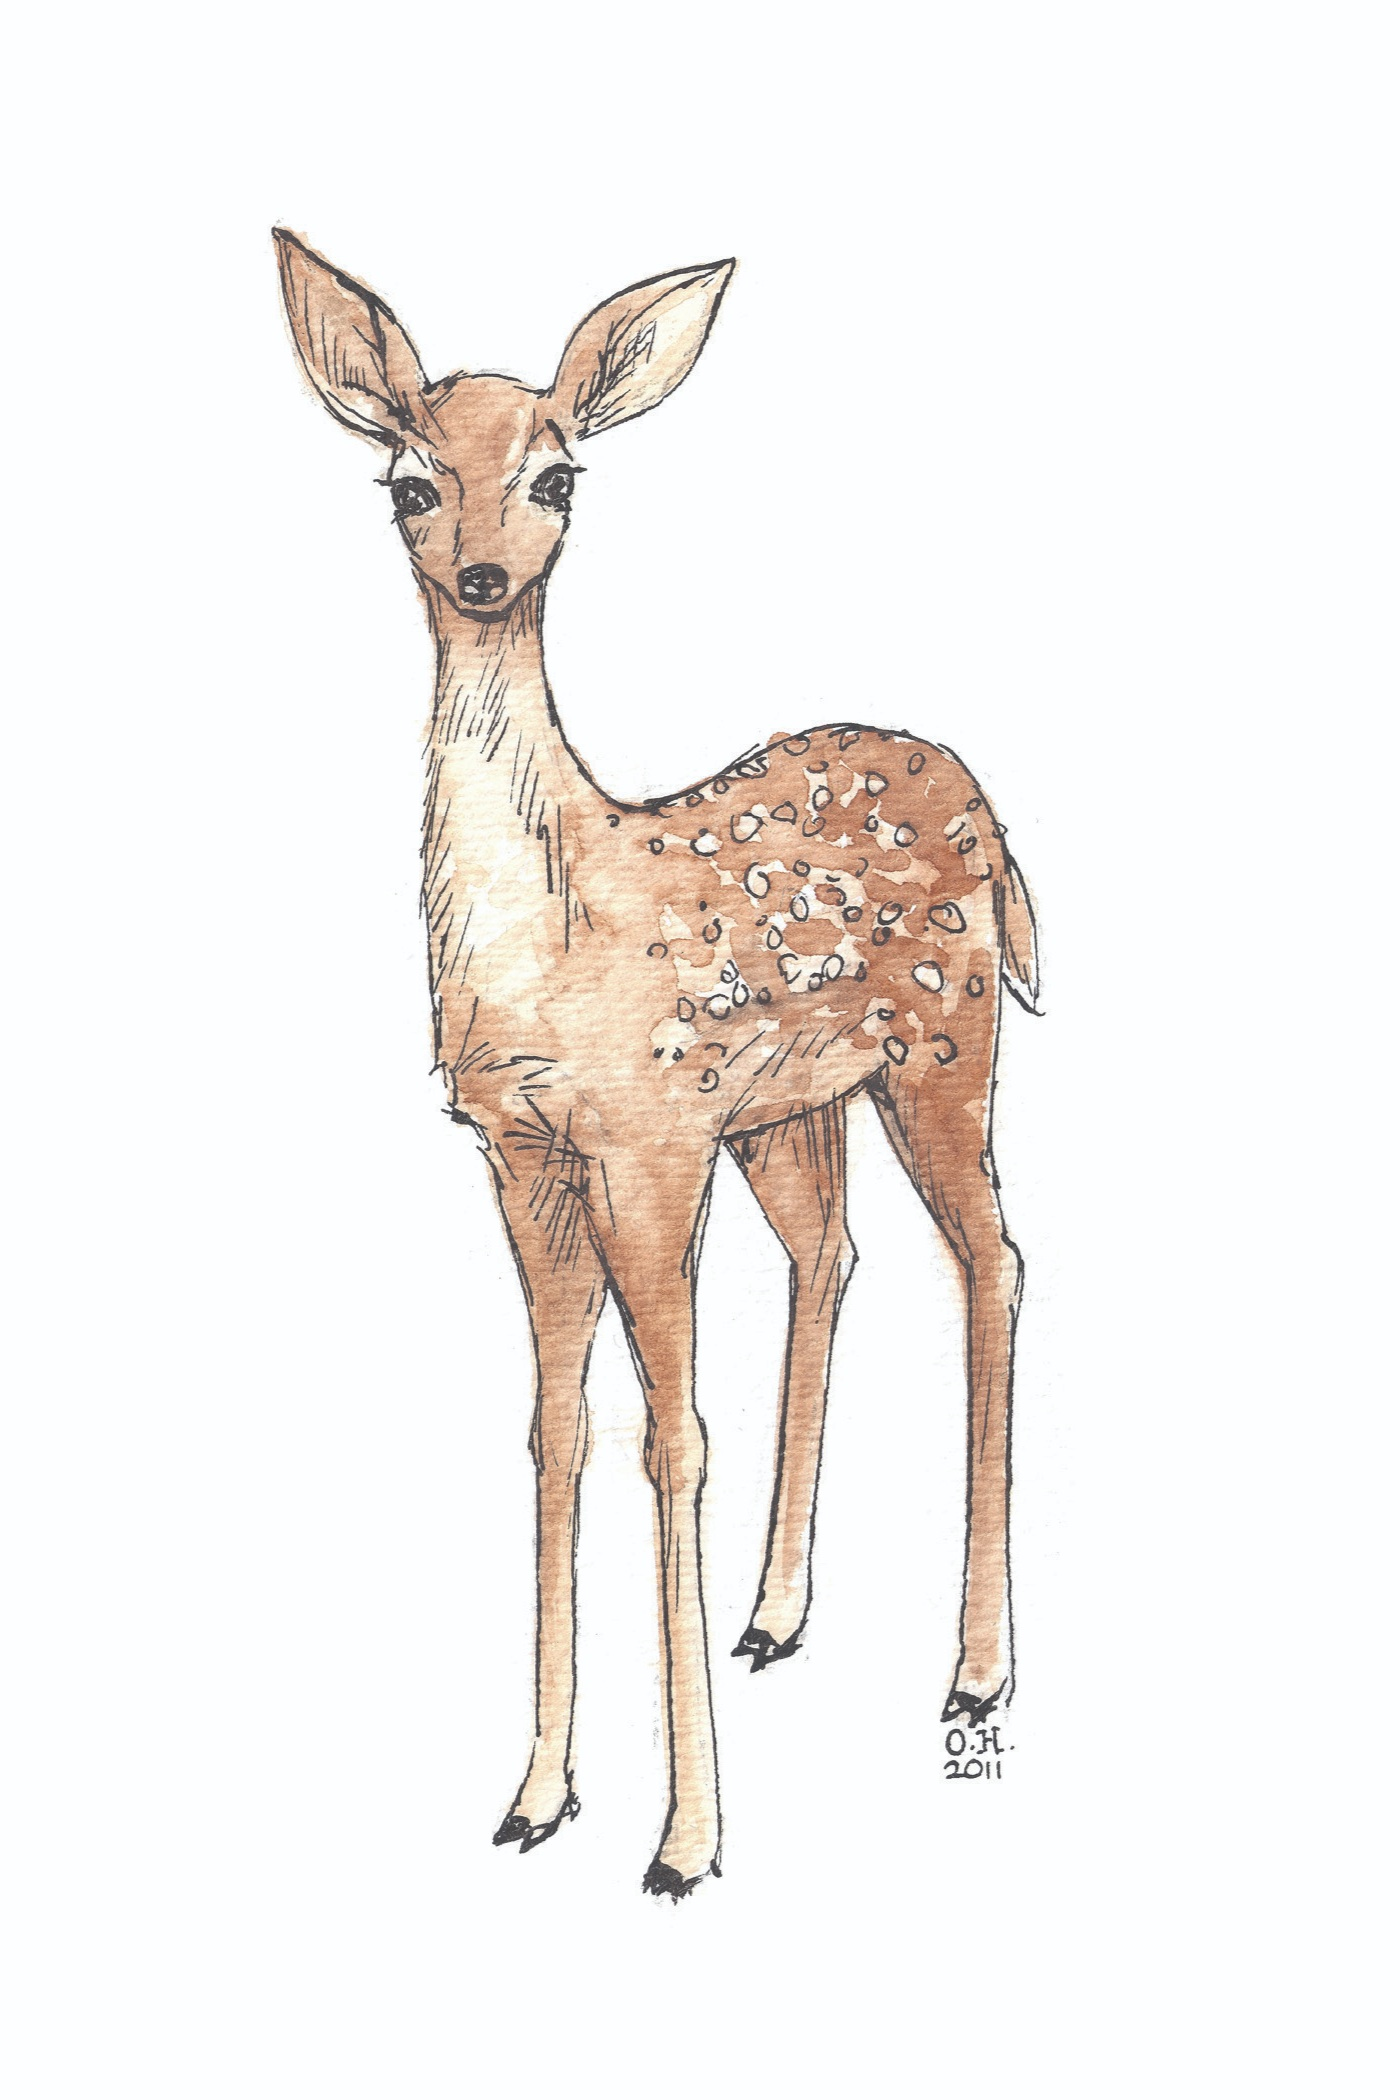 Fawn 2011 Watercolor and India ink